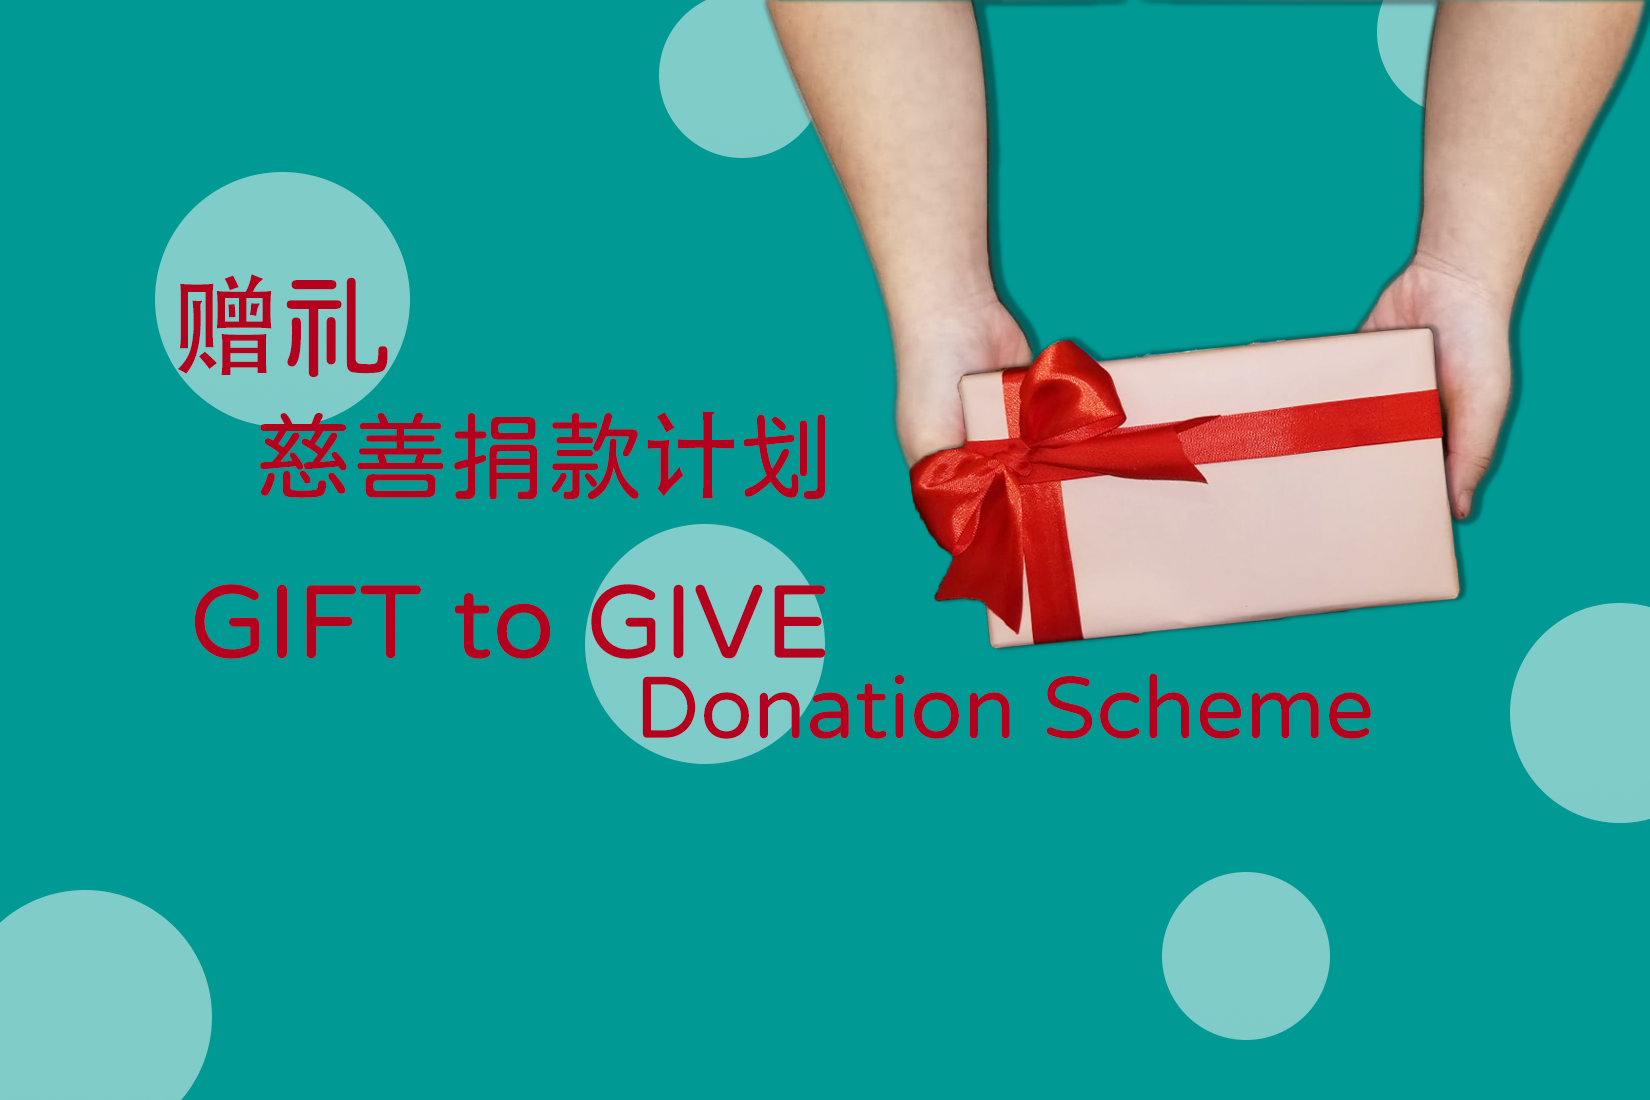 gift-to-give-donation_hero-banner_SC_update